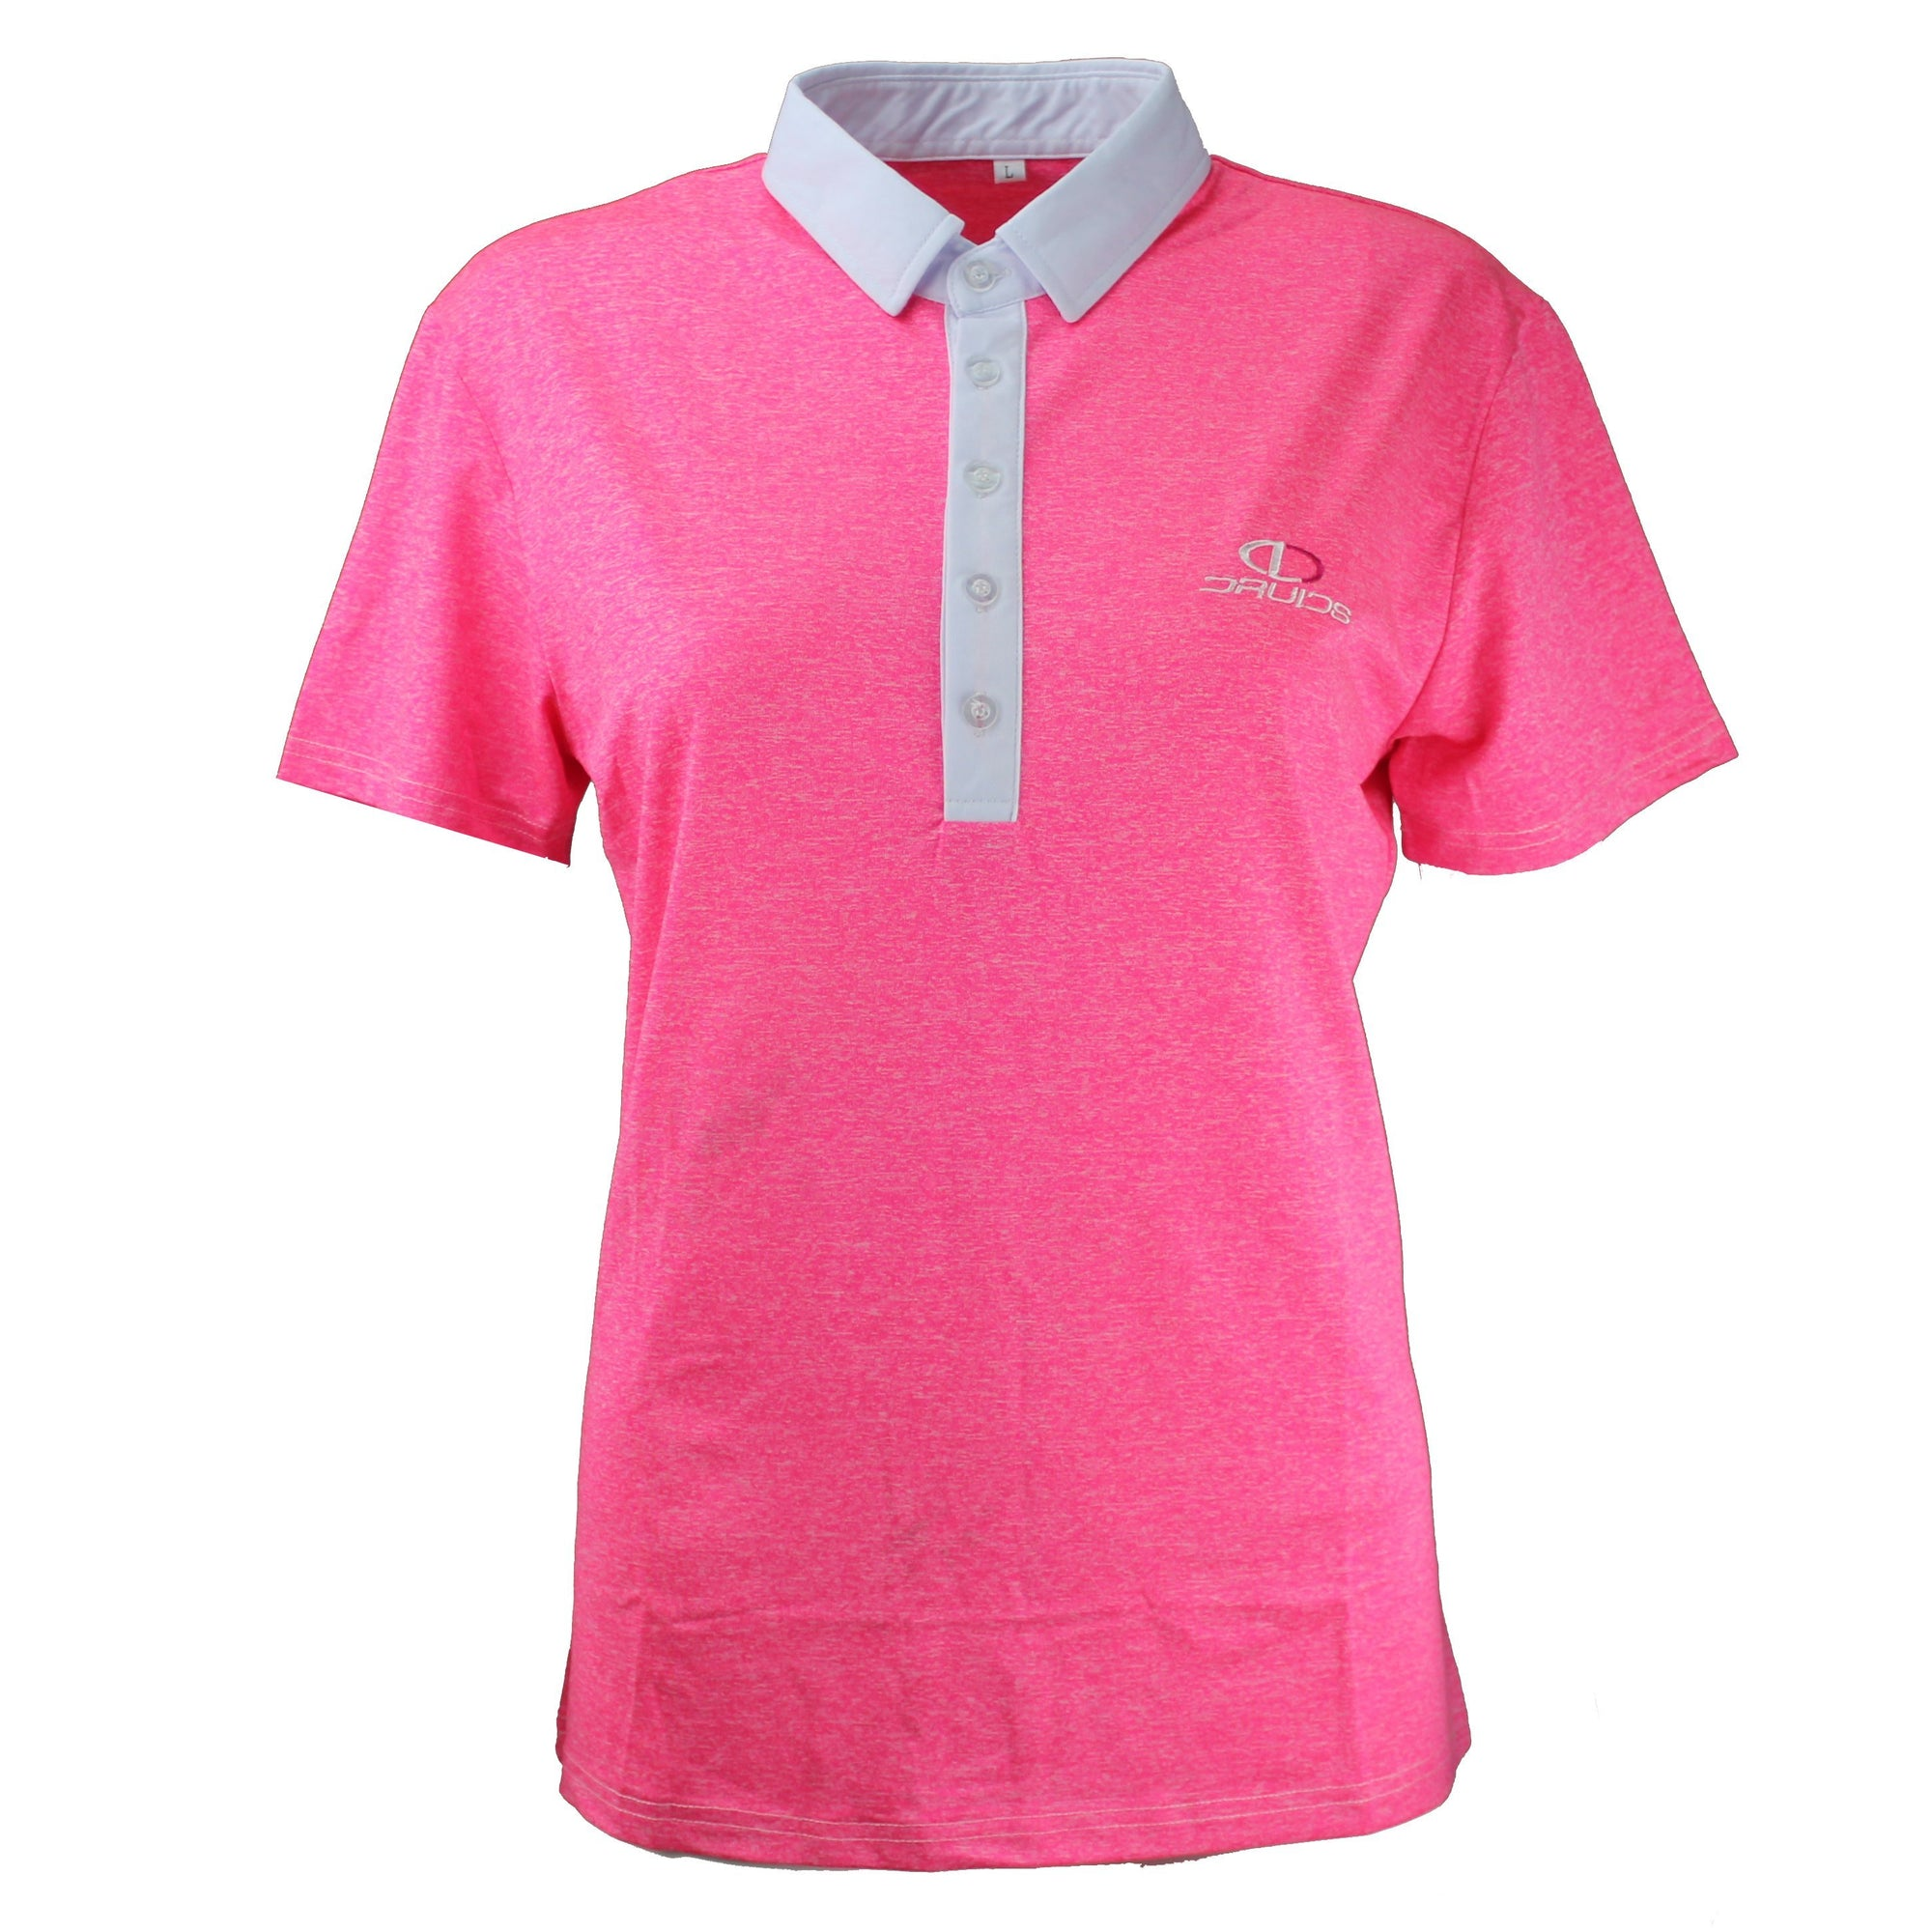 Druids Golf - Ladies Speckled Polo 2018 (Pink)